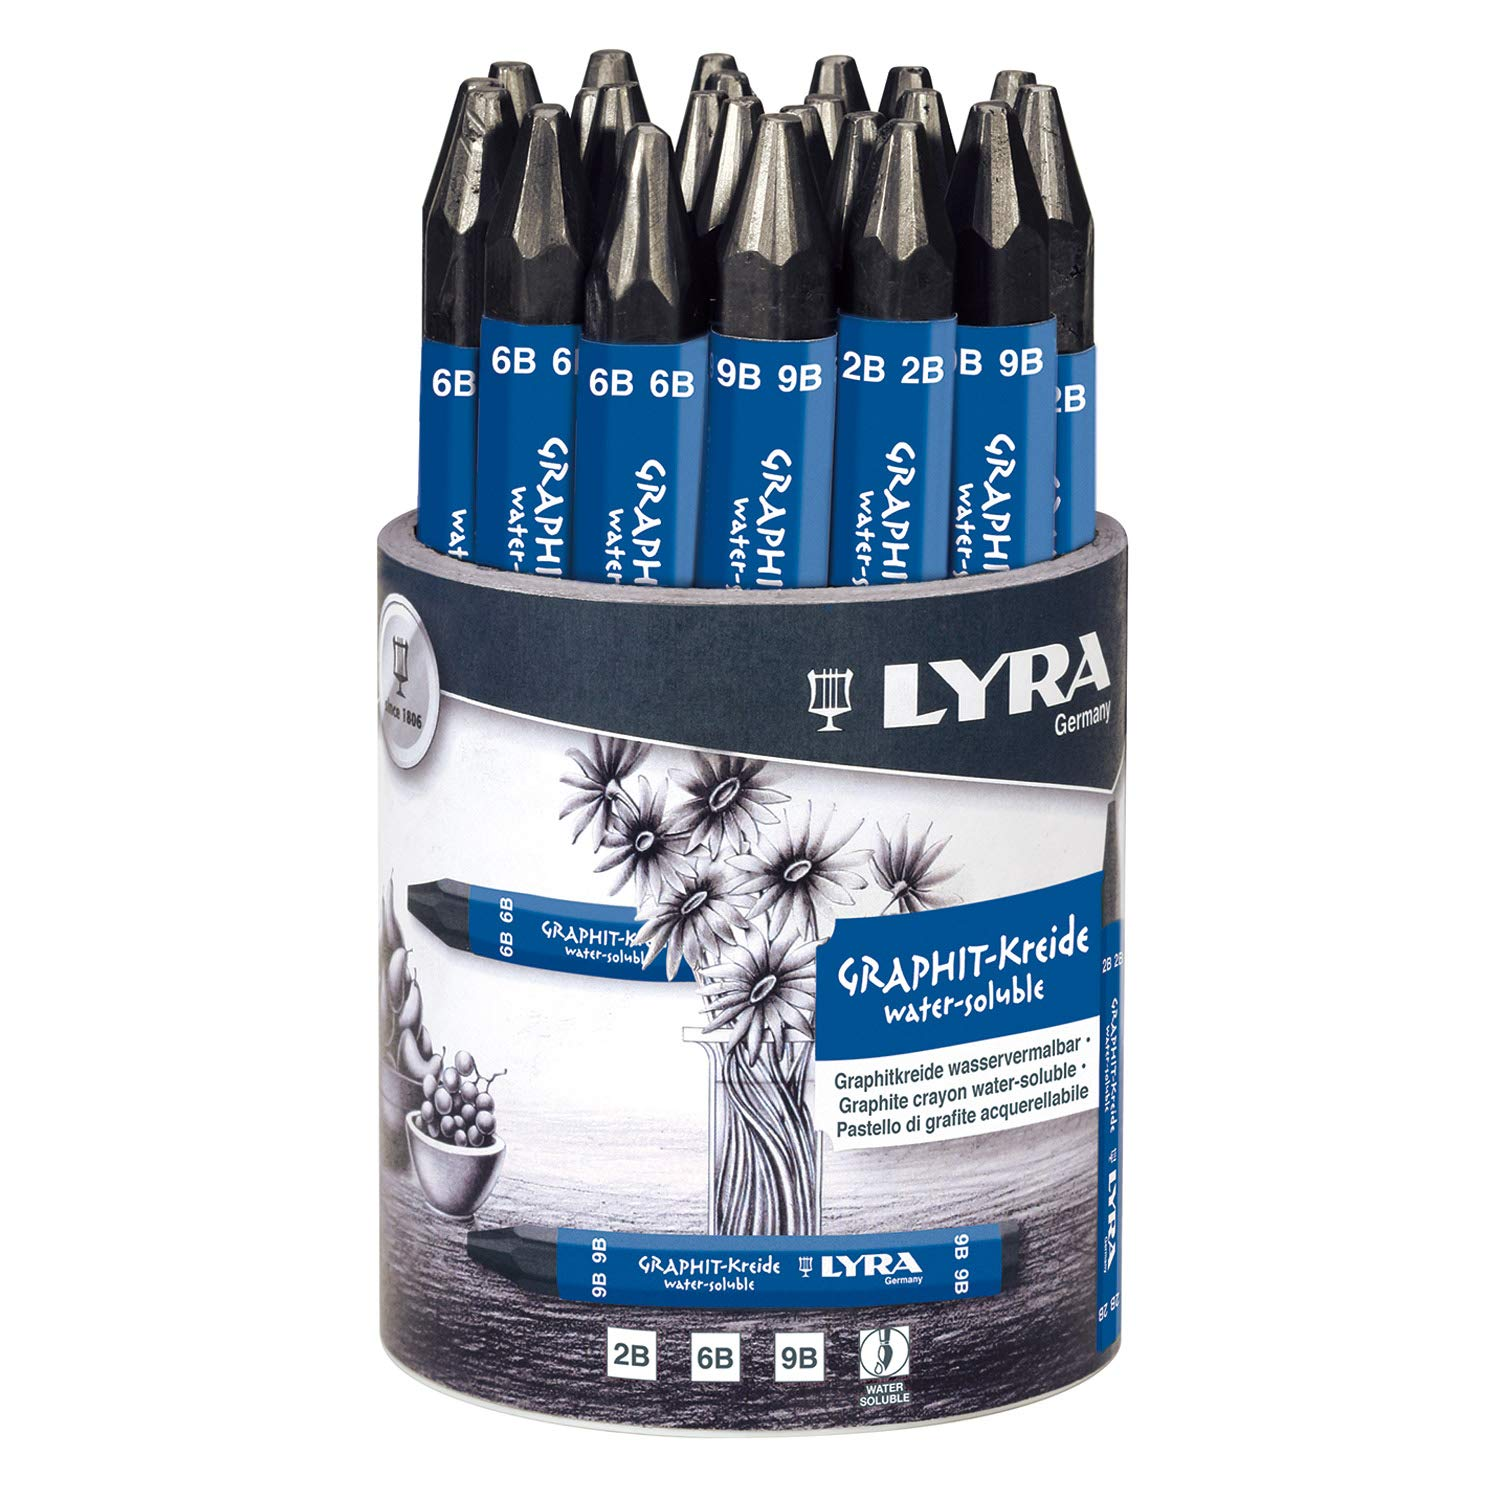 LYRA Graphite Crayons, Assorted Degrees, Water-Soluble, Set of 24 Crayons, Black (5633240)